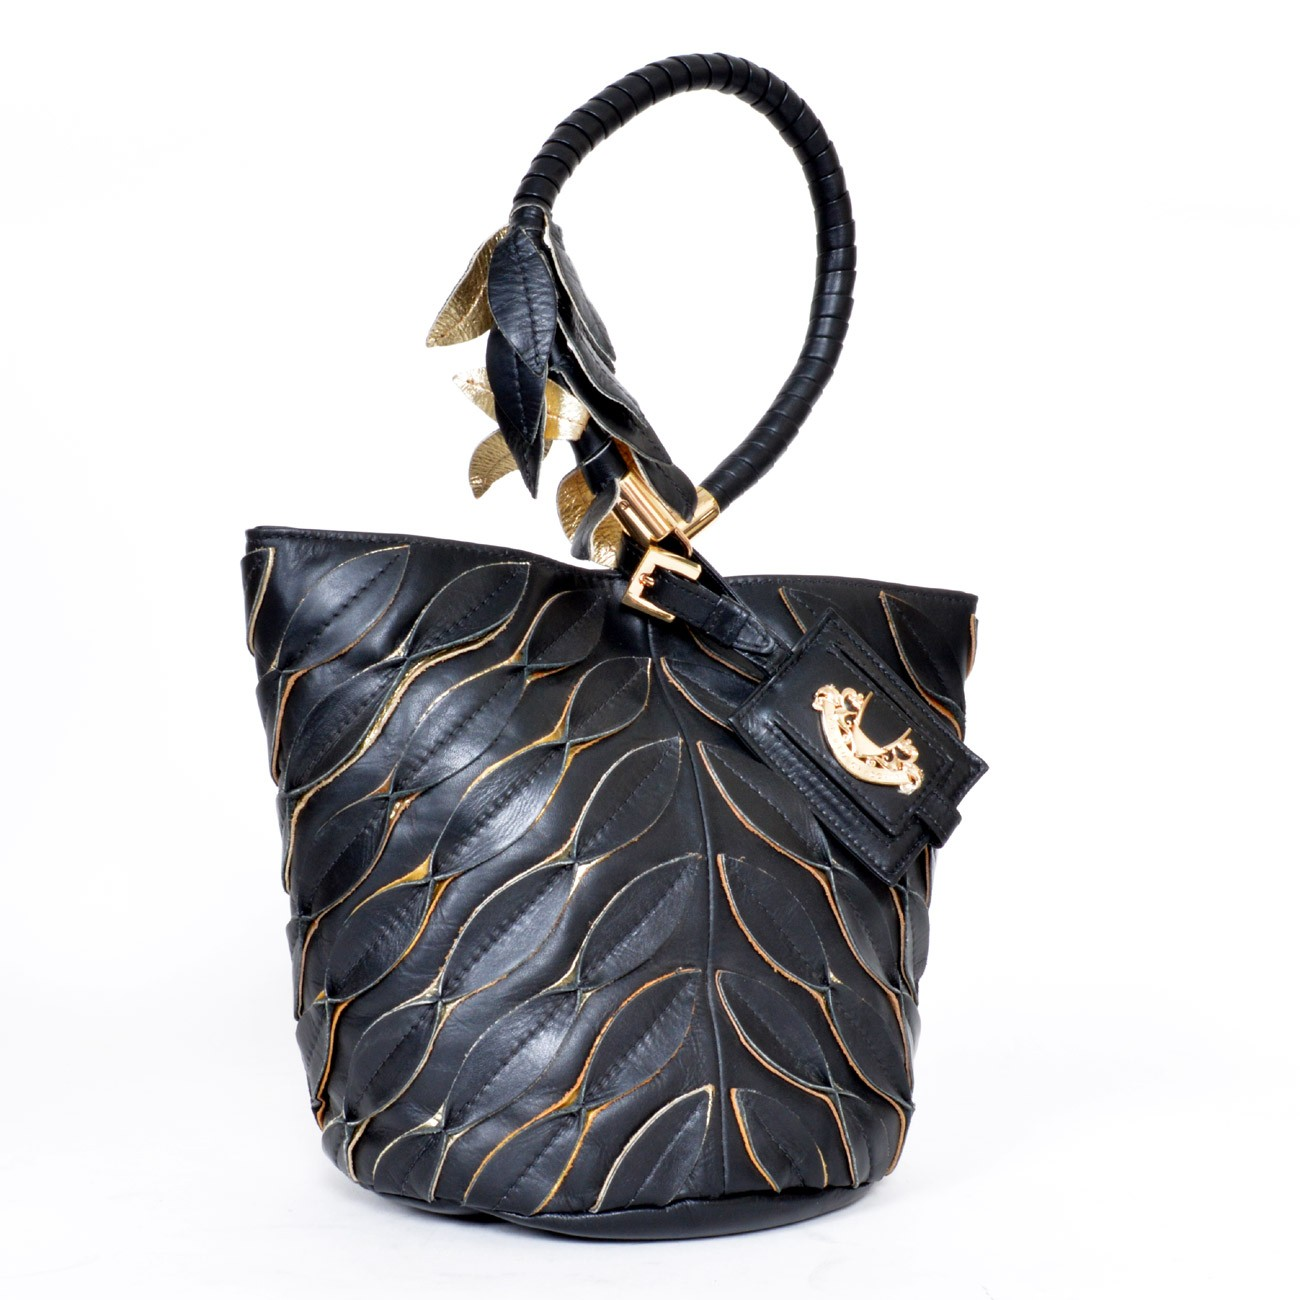 Alberto Ciaschini Handheld Bag- Black and Gold